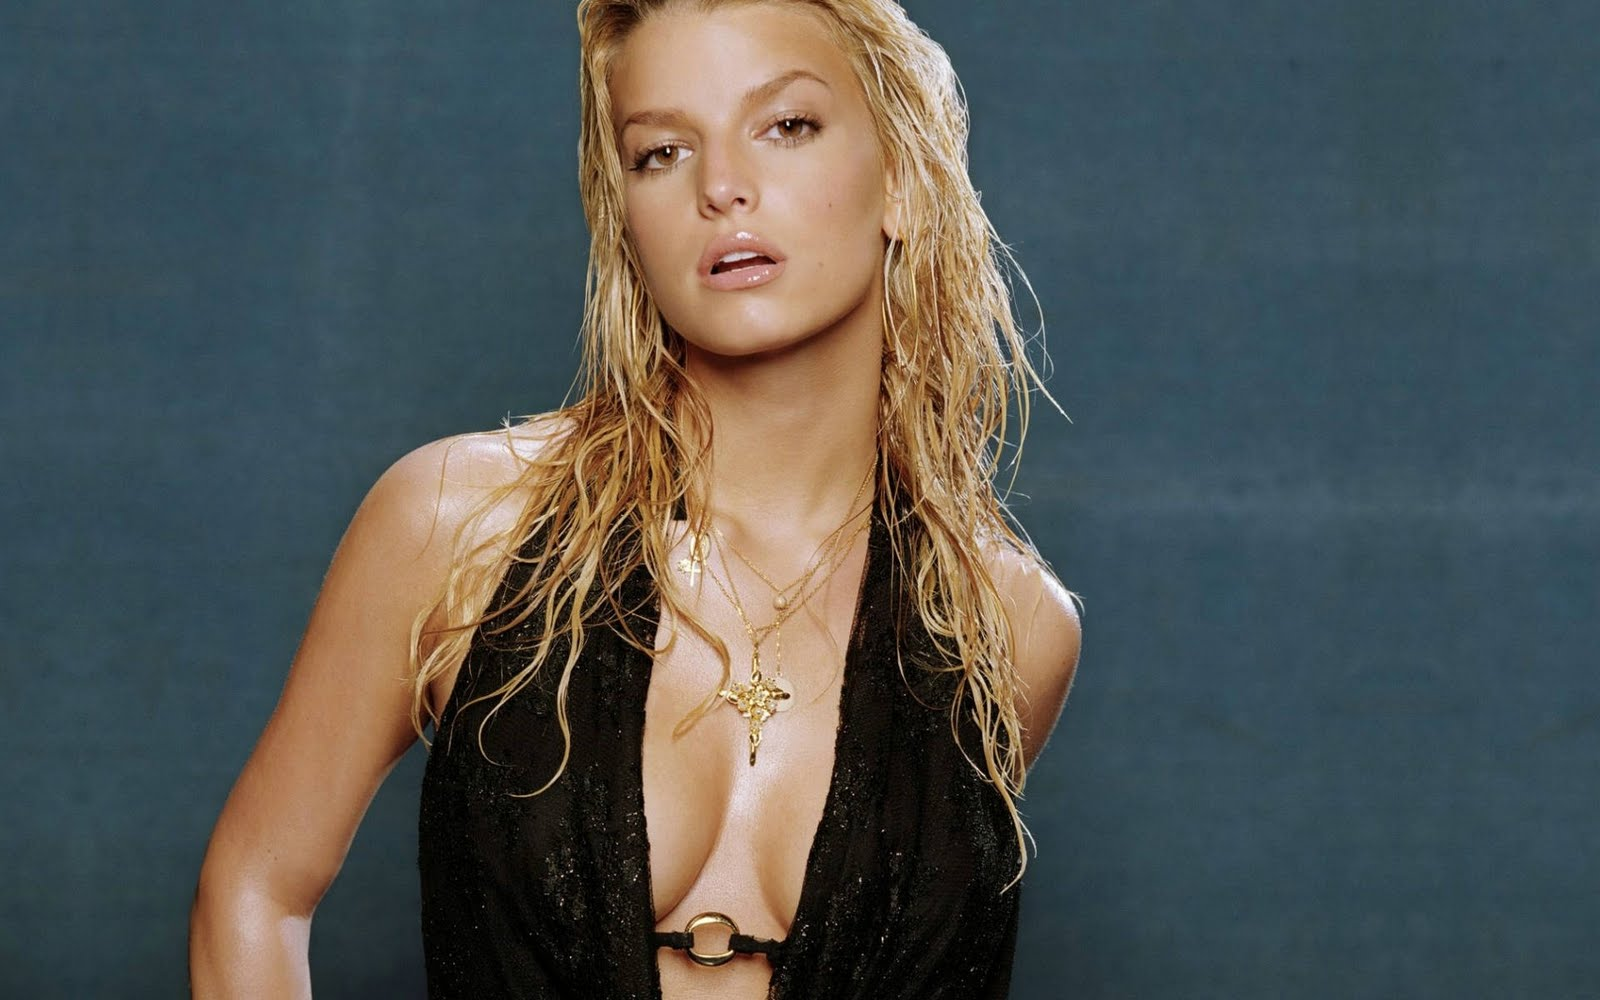 Jessica simpson pics images and wallpapers hollywood - Celeb wallpapers ...